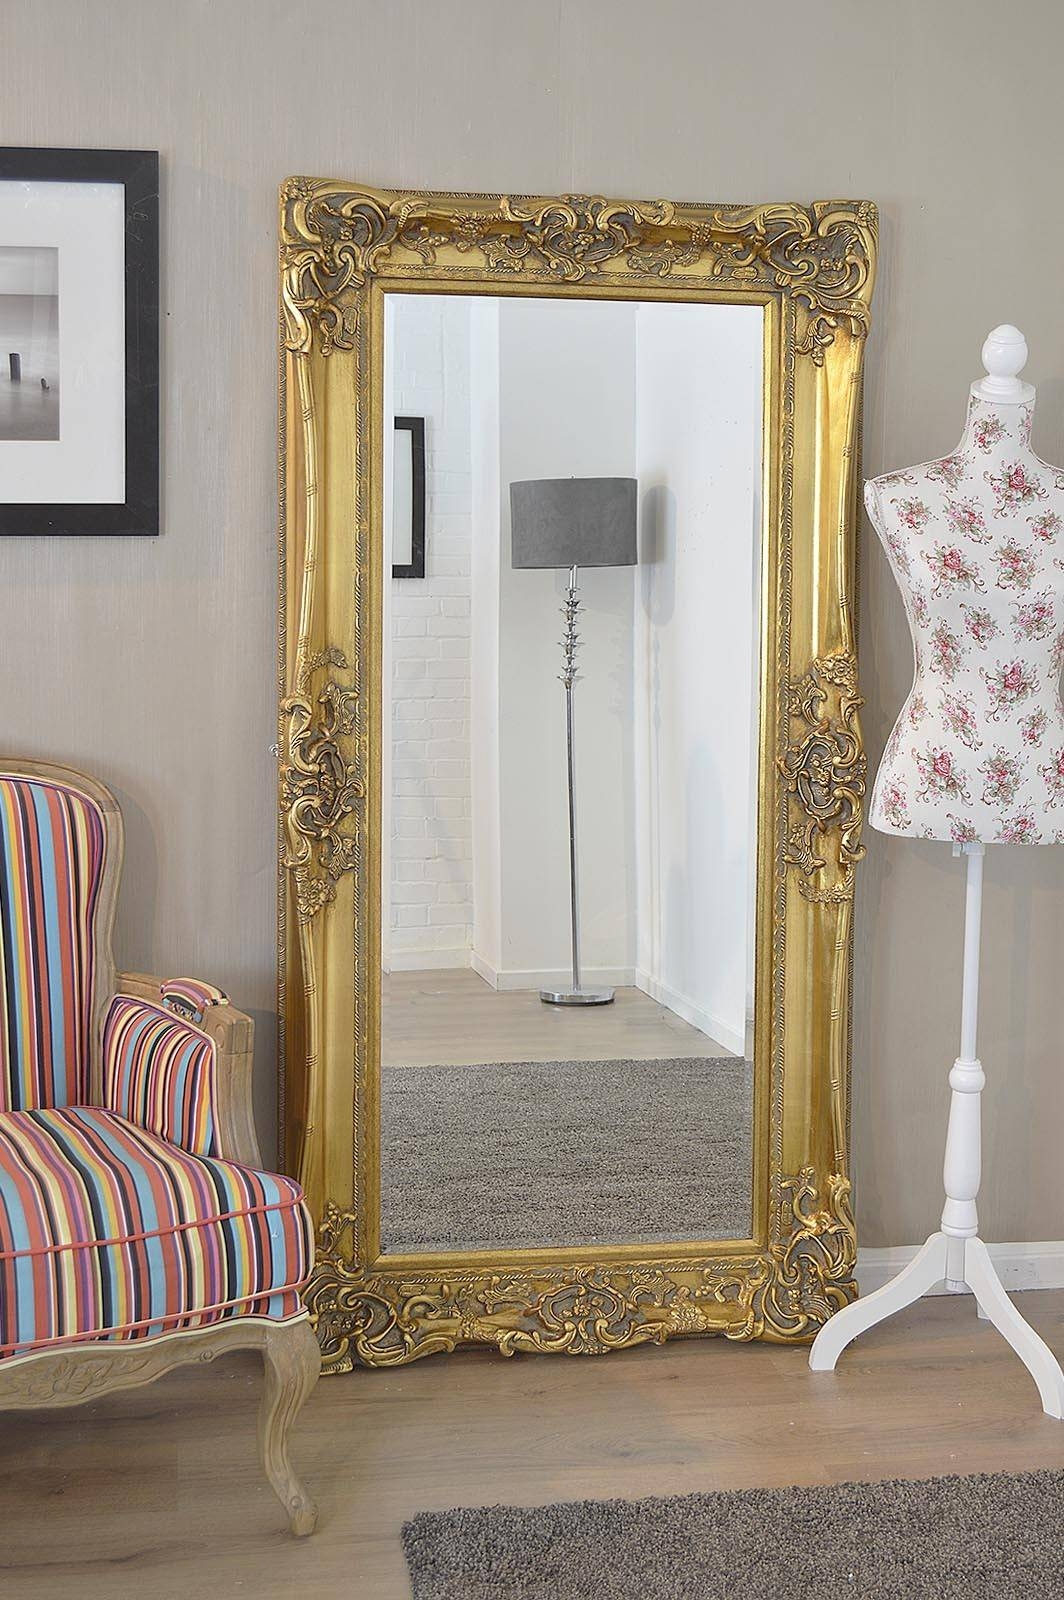 Oak Antique Wall Mirror And Large Living Room Mirrors Likewise for Round Shabby Chic Mirrors (Image 11 of 15)